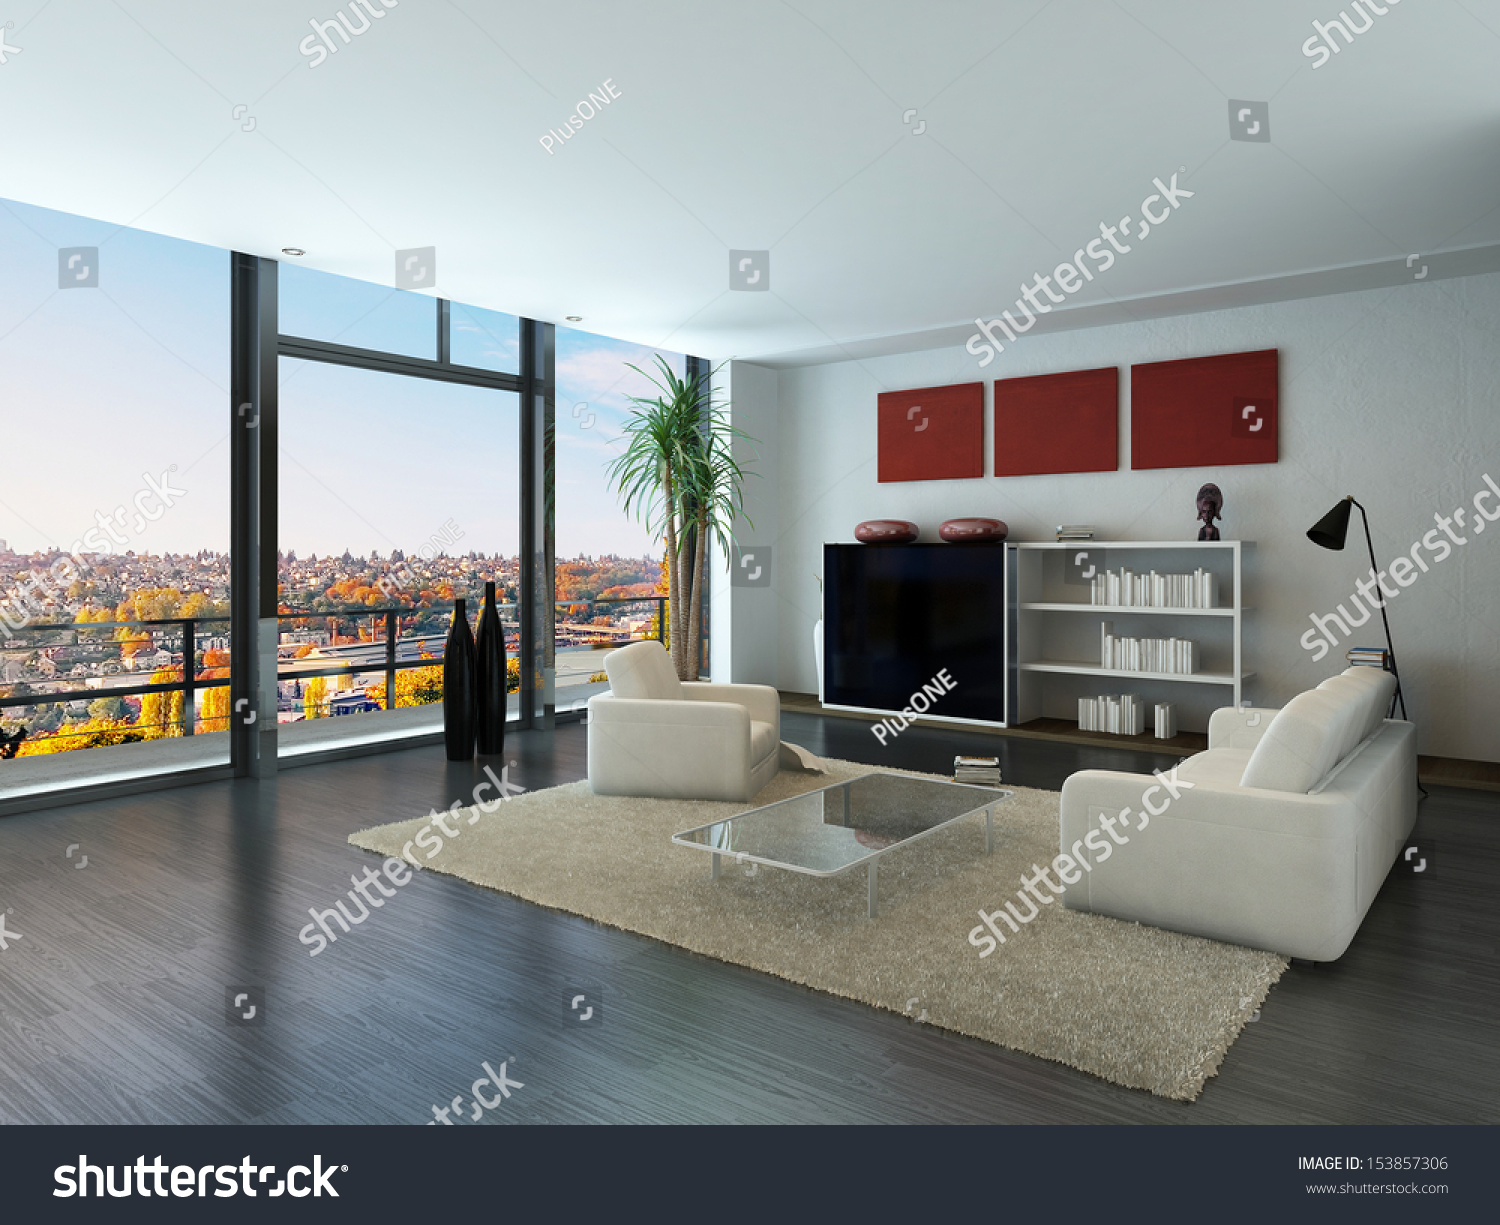 Modern loft interior trendy living room stock illustration for Trendy living room furniture